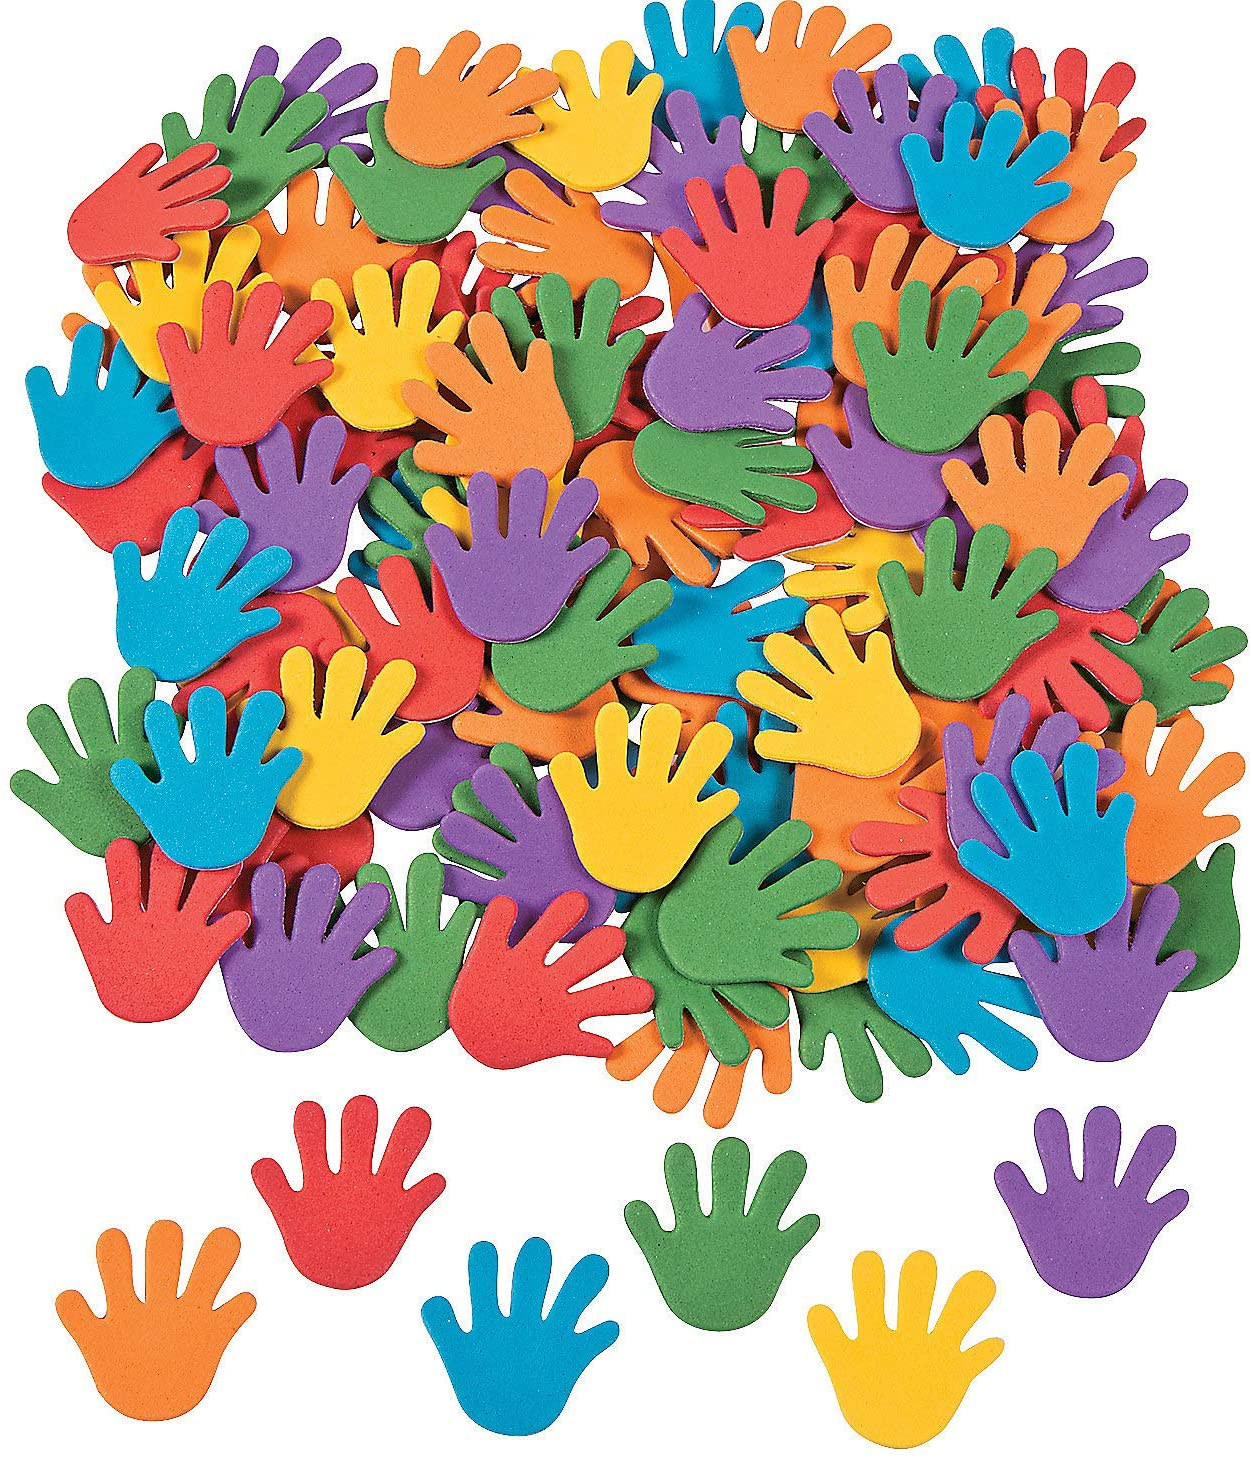 Rainbow Hand Adhesive Foam Shapes - Crafts for Kids and Fun Home Activities